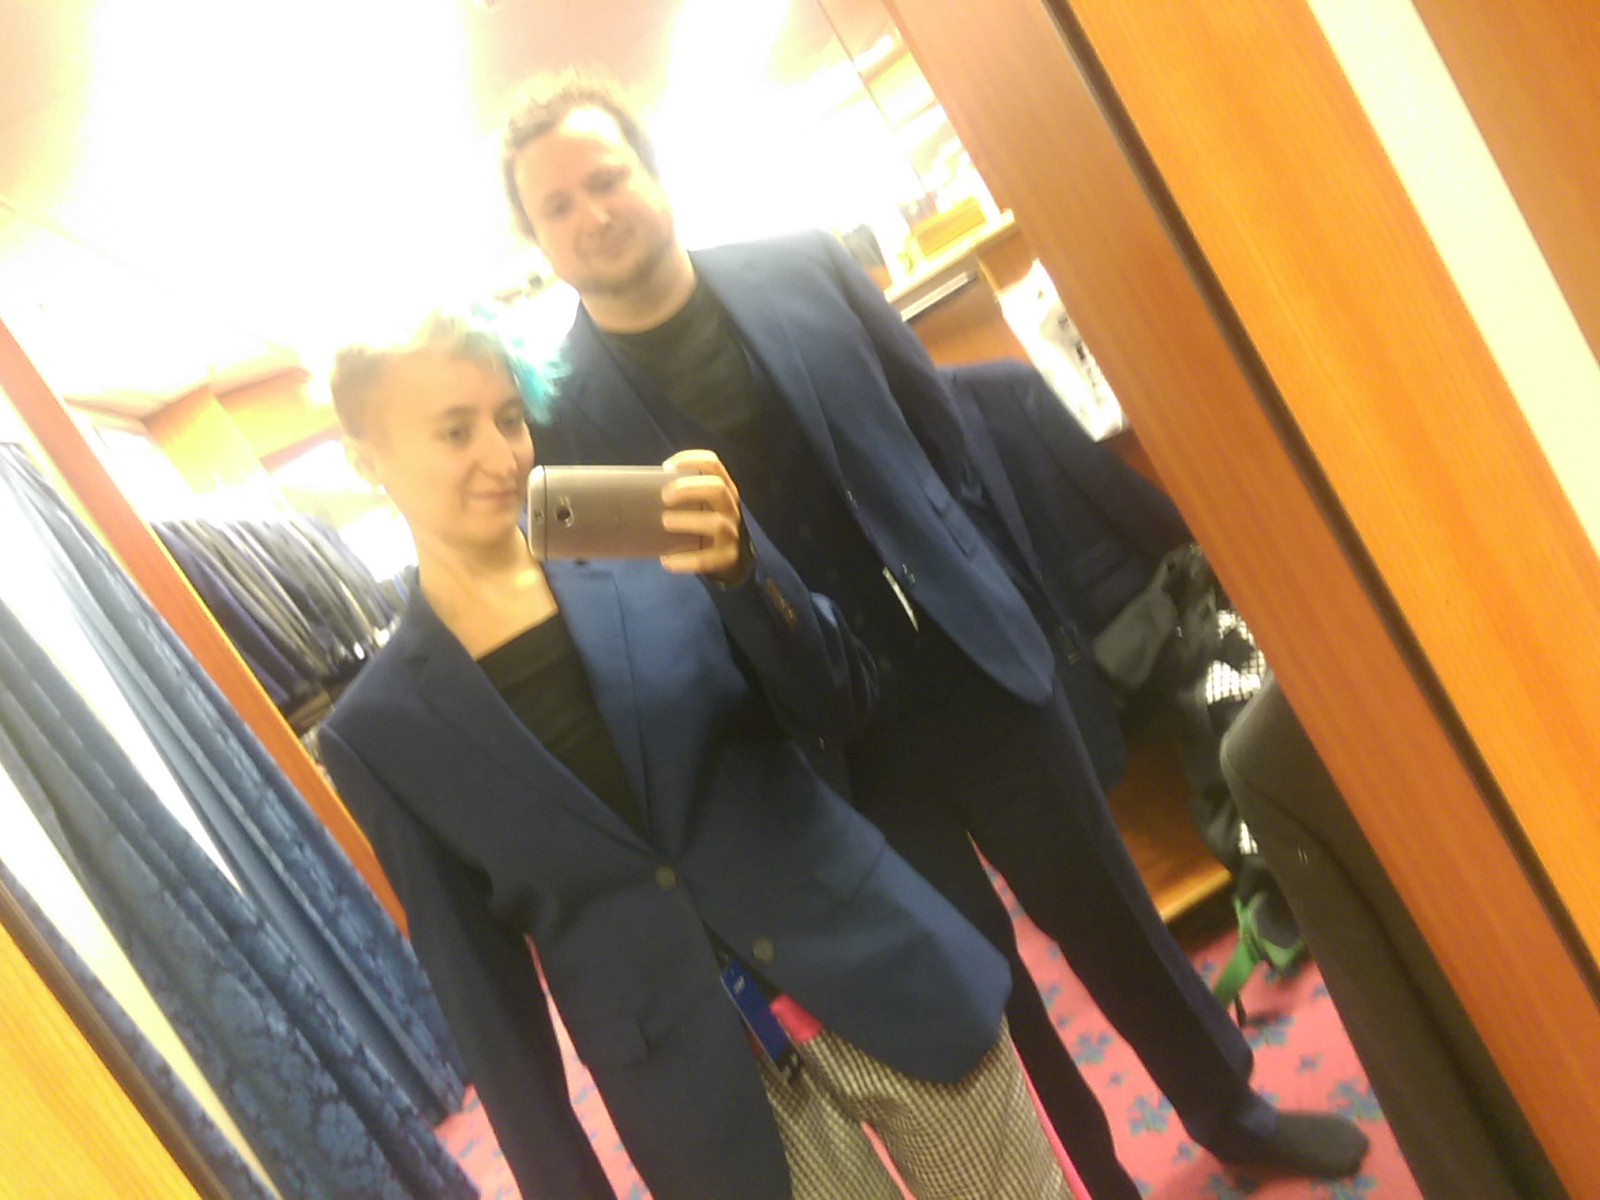 A selfie of two different sized humans in a mirror, wearing navy blue jackets in a suit shop